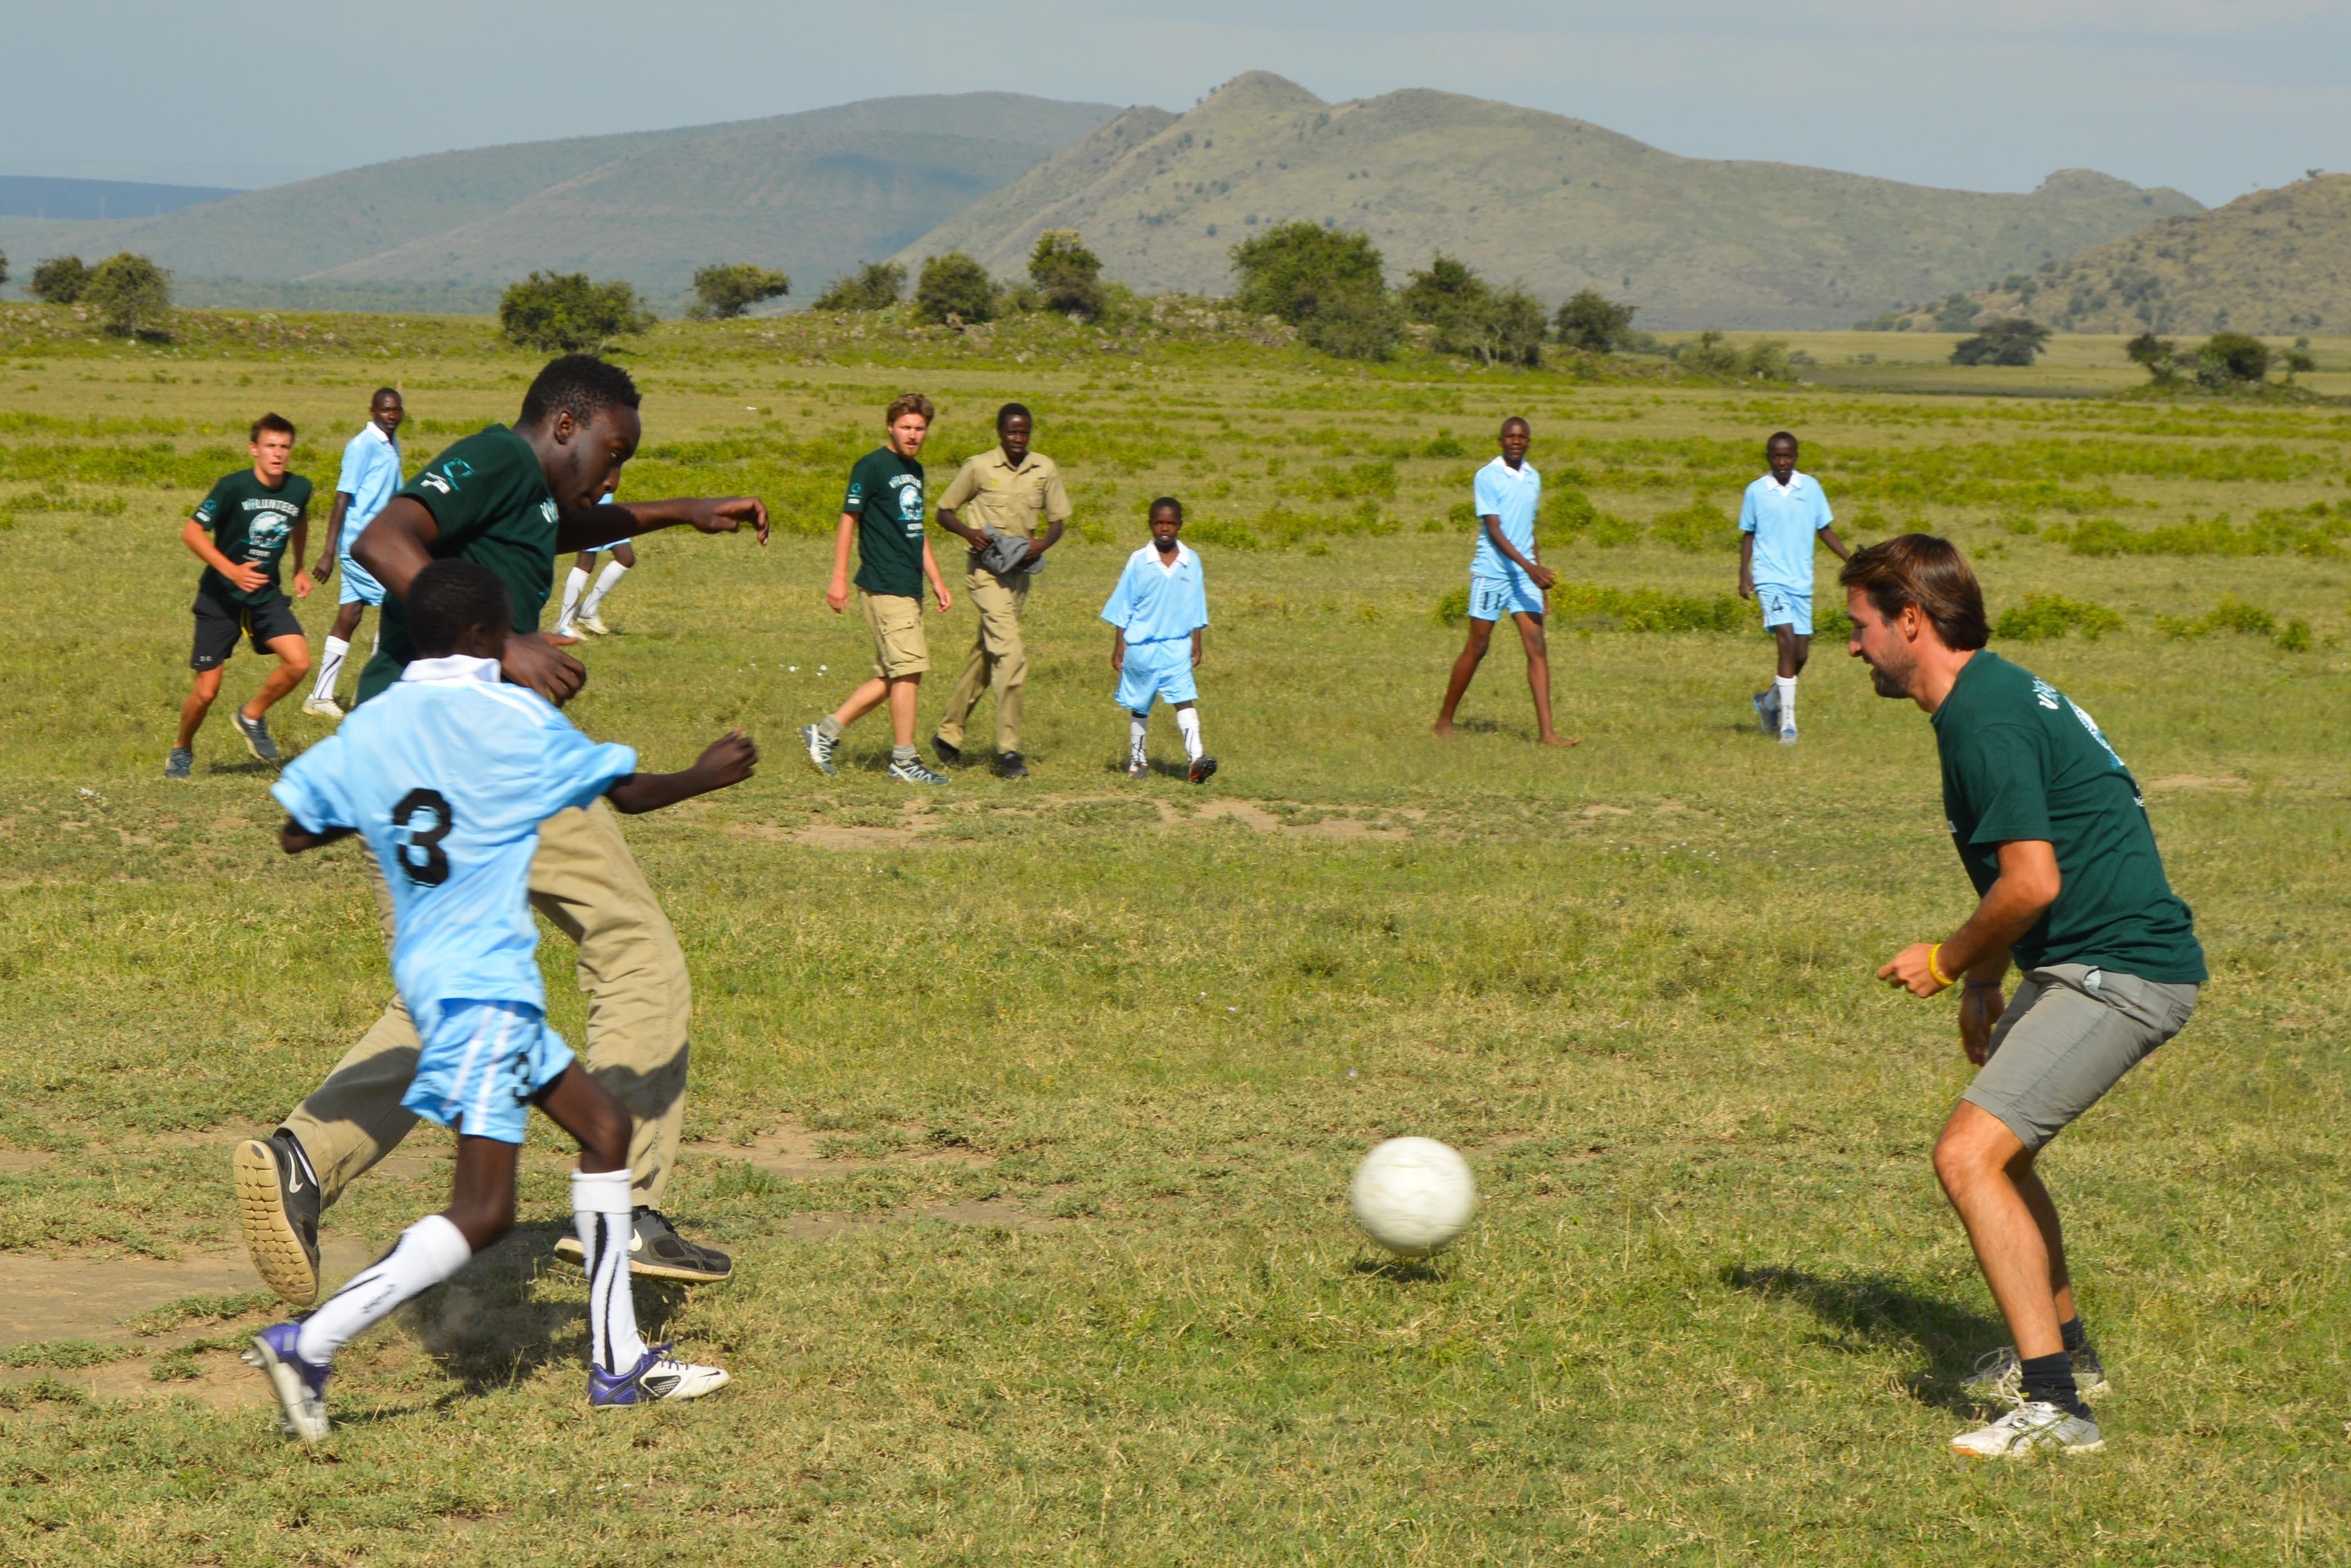 Volunteers and local students playing football on one of our Sports volunteering opportunities.